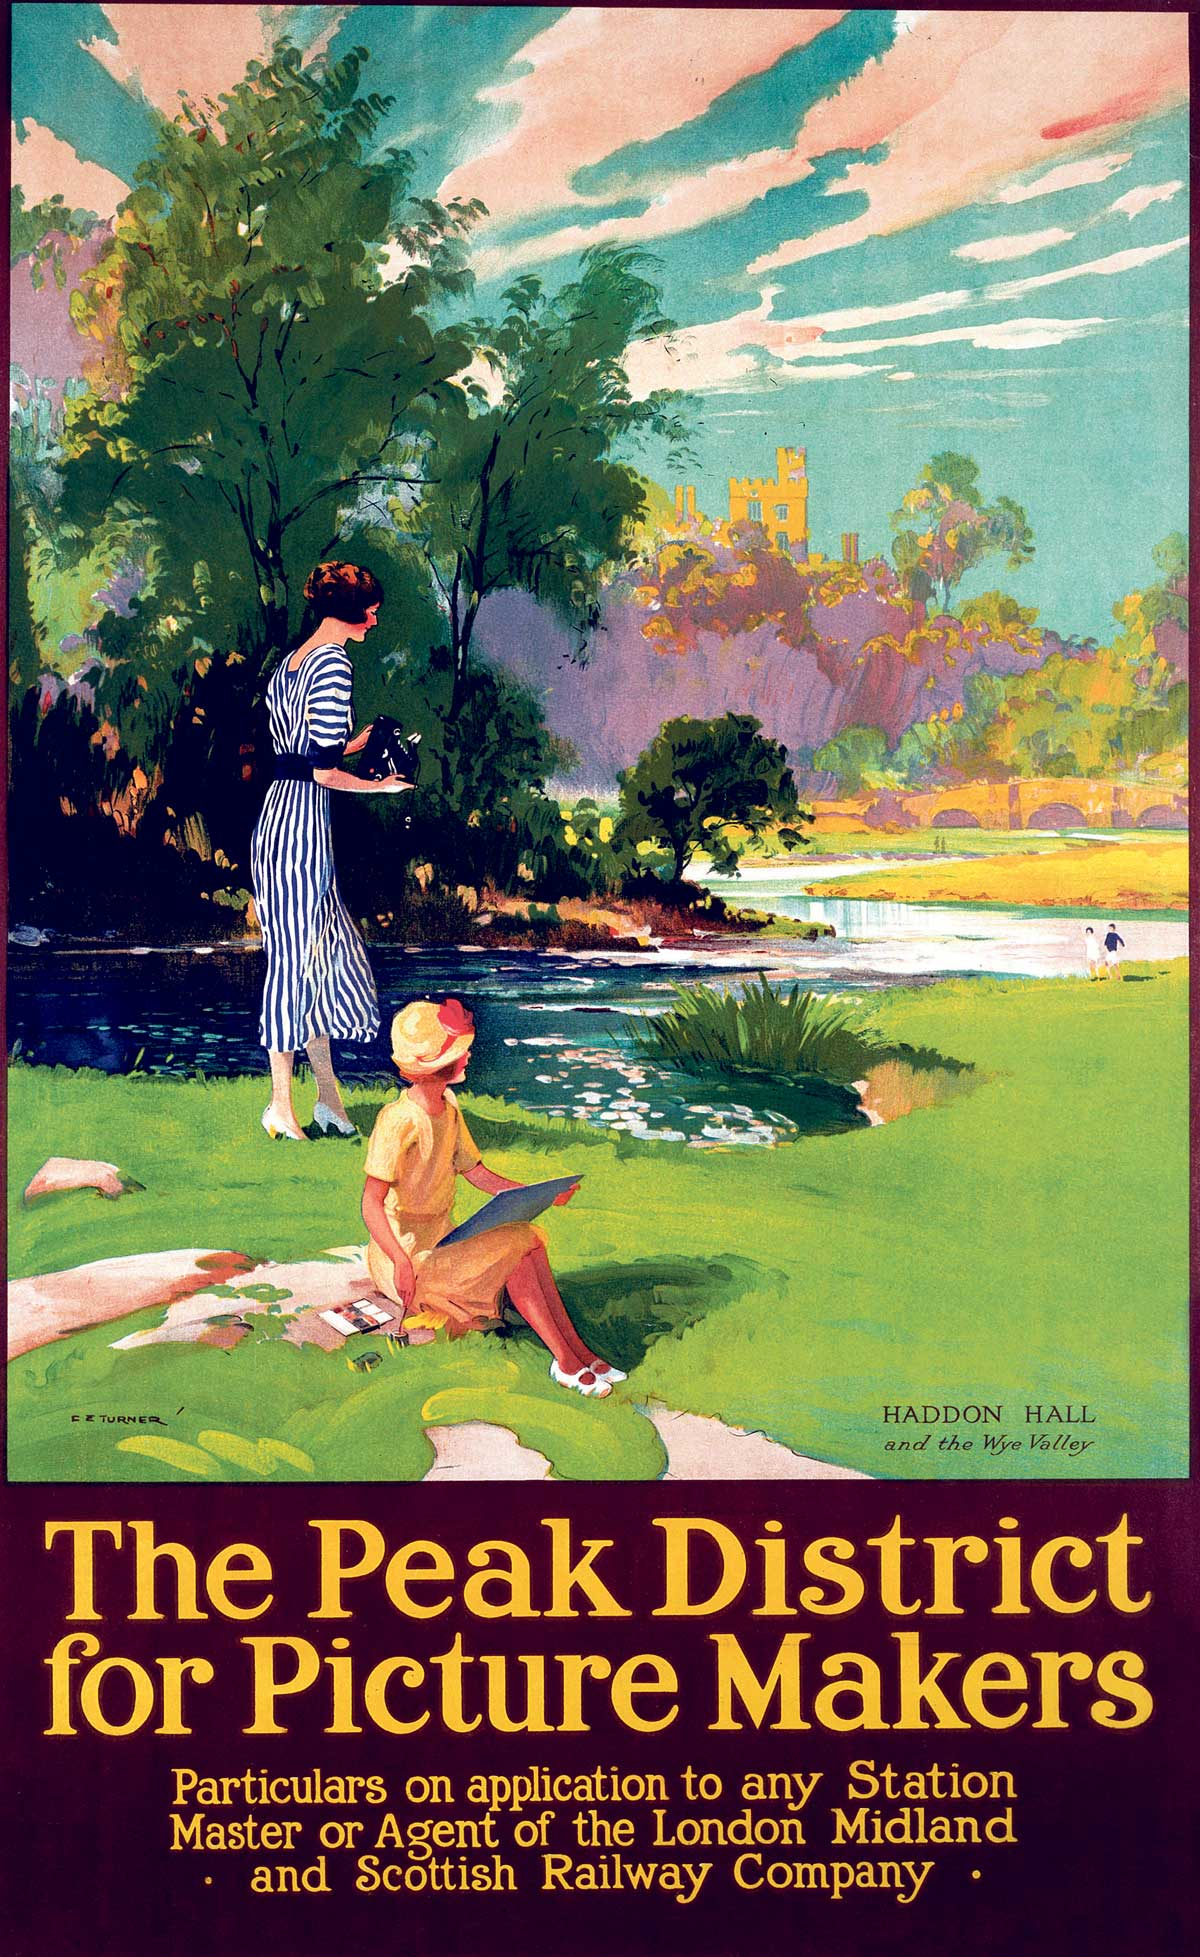 Railway poster for the Peak District, 1930s. Illustration by Charles E. Turner. Photo © Getty Images